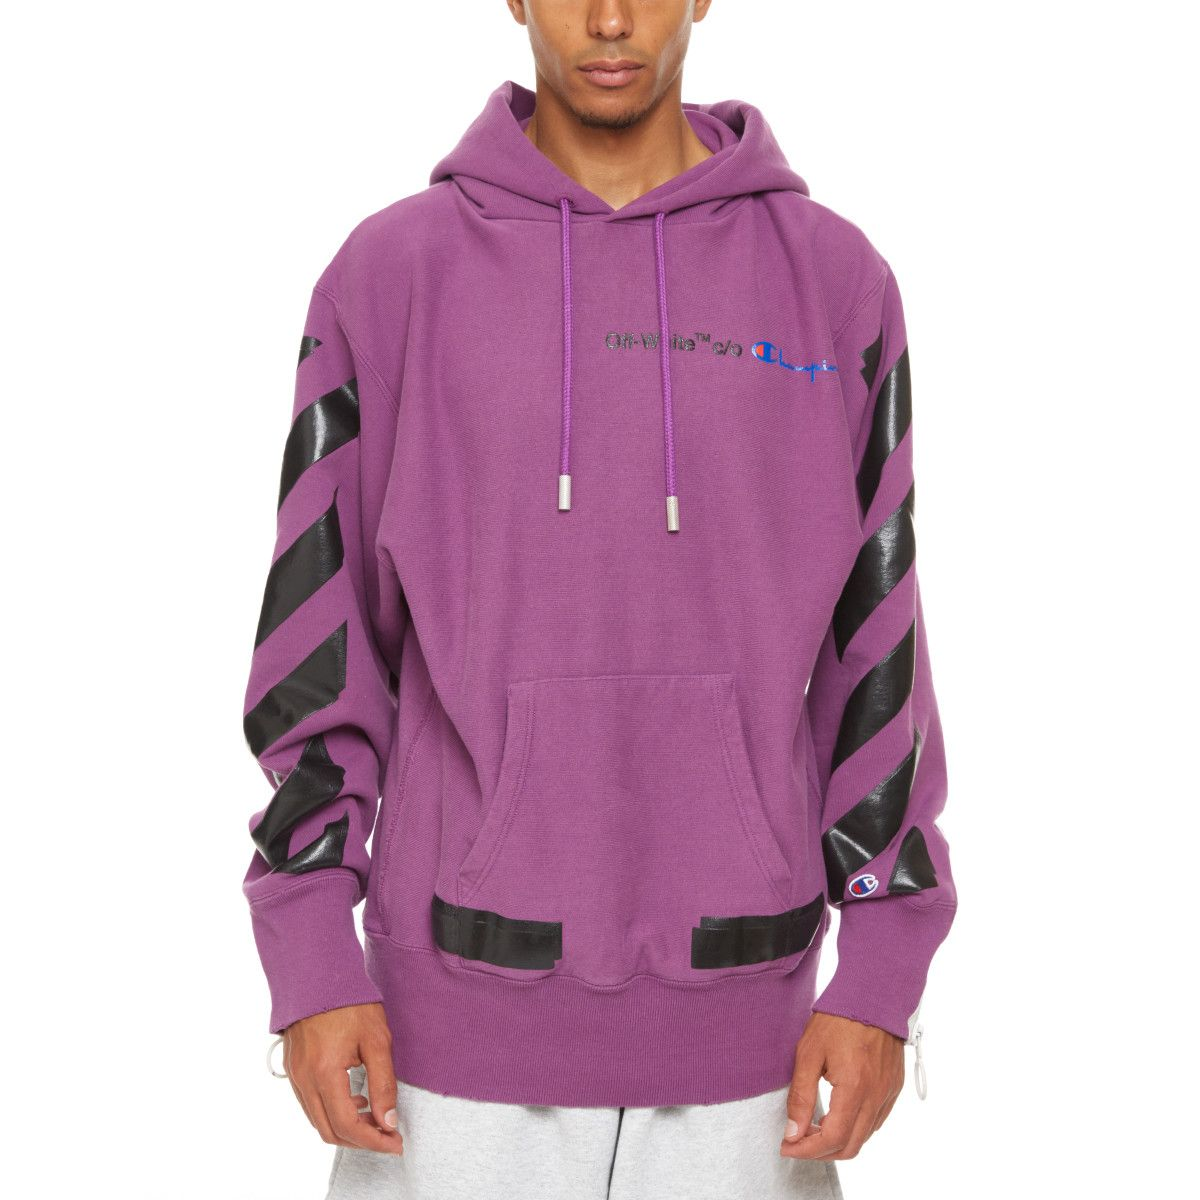 9f1ce5714 Champion hoodie from the S/S2018 Off-White c/o Virgil Abloh collection in  violet